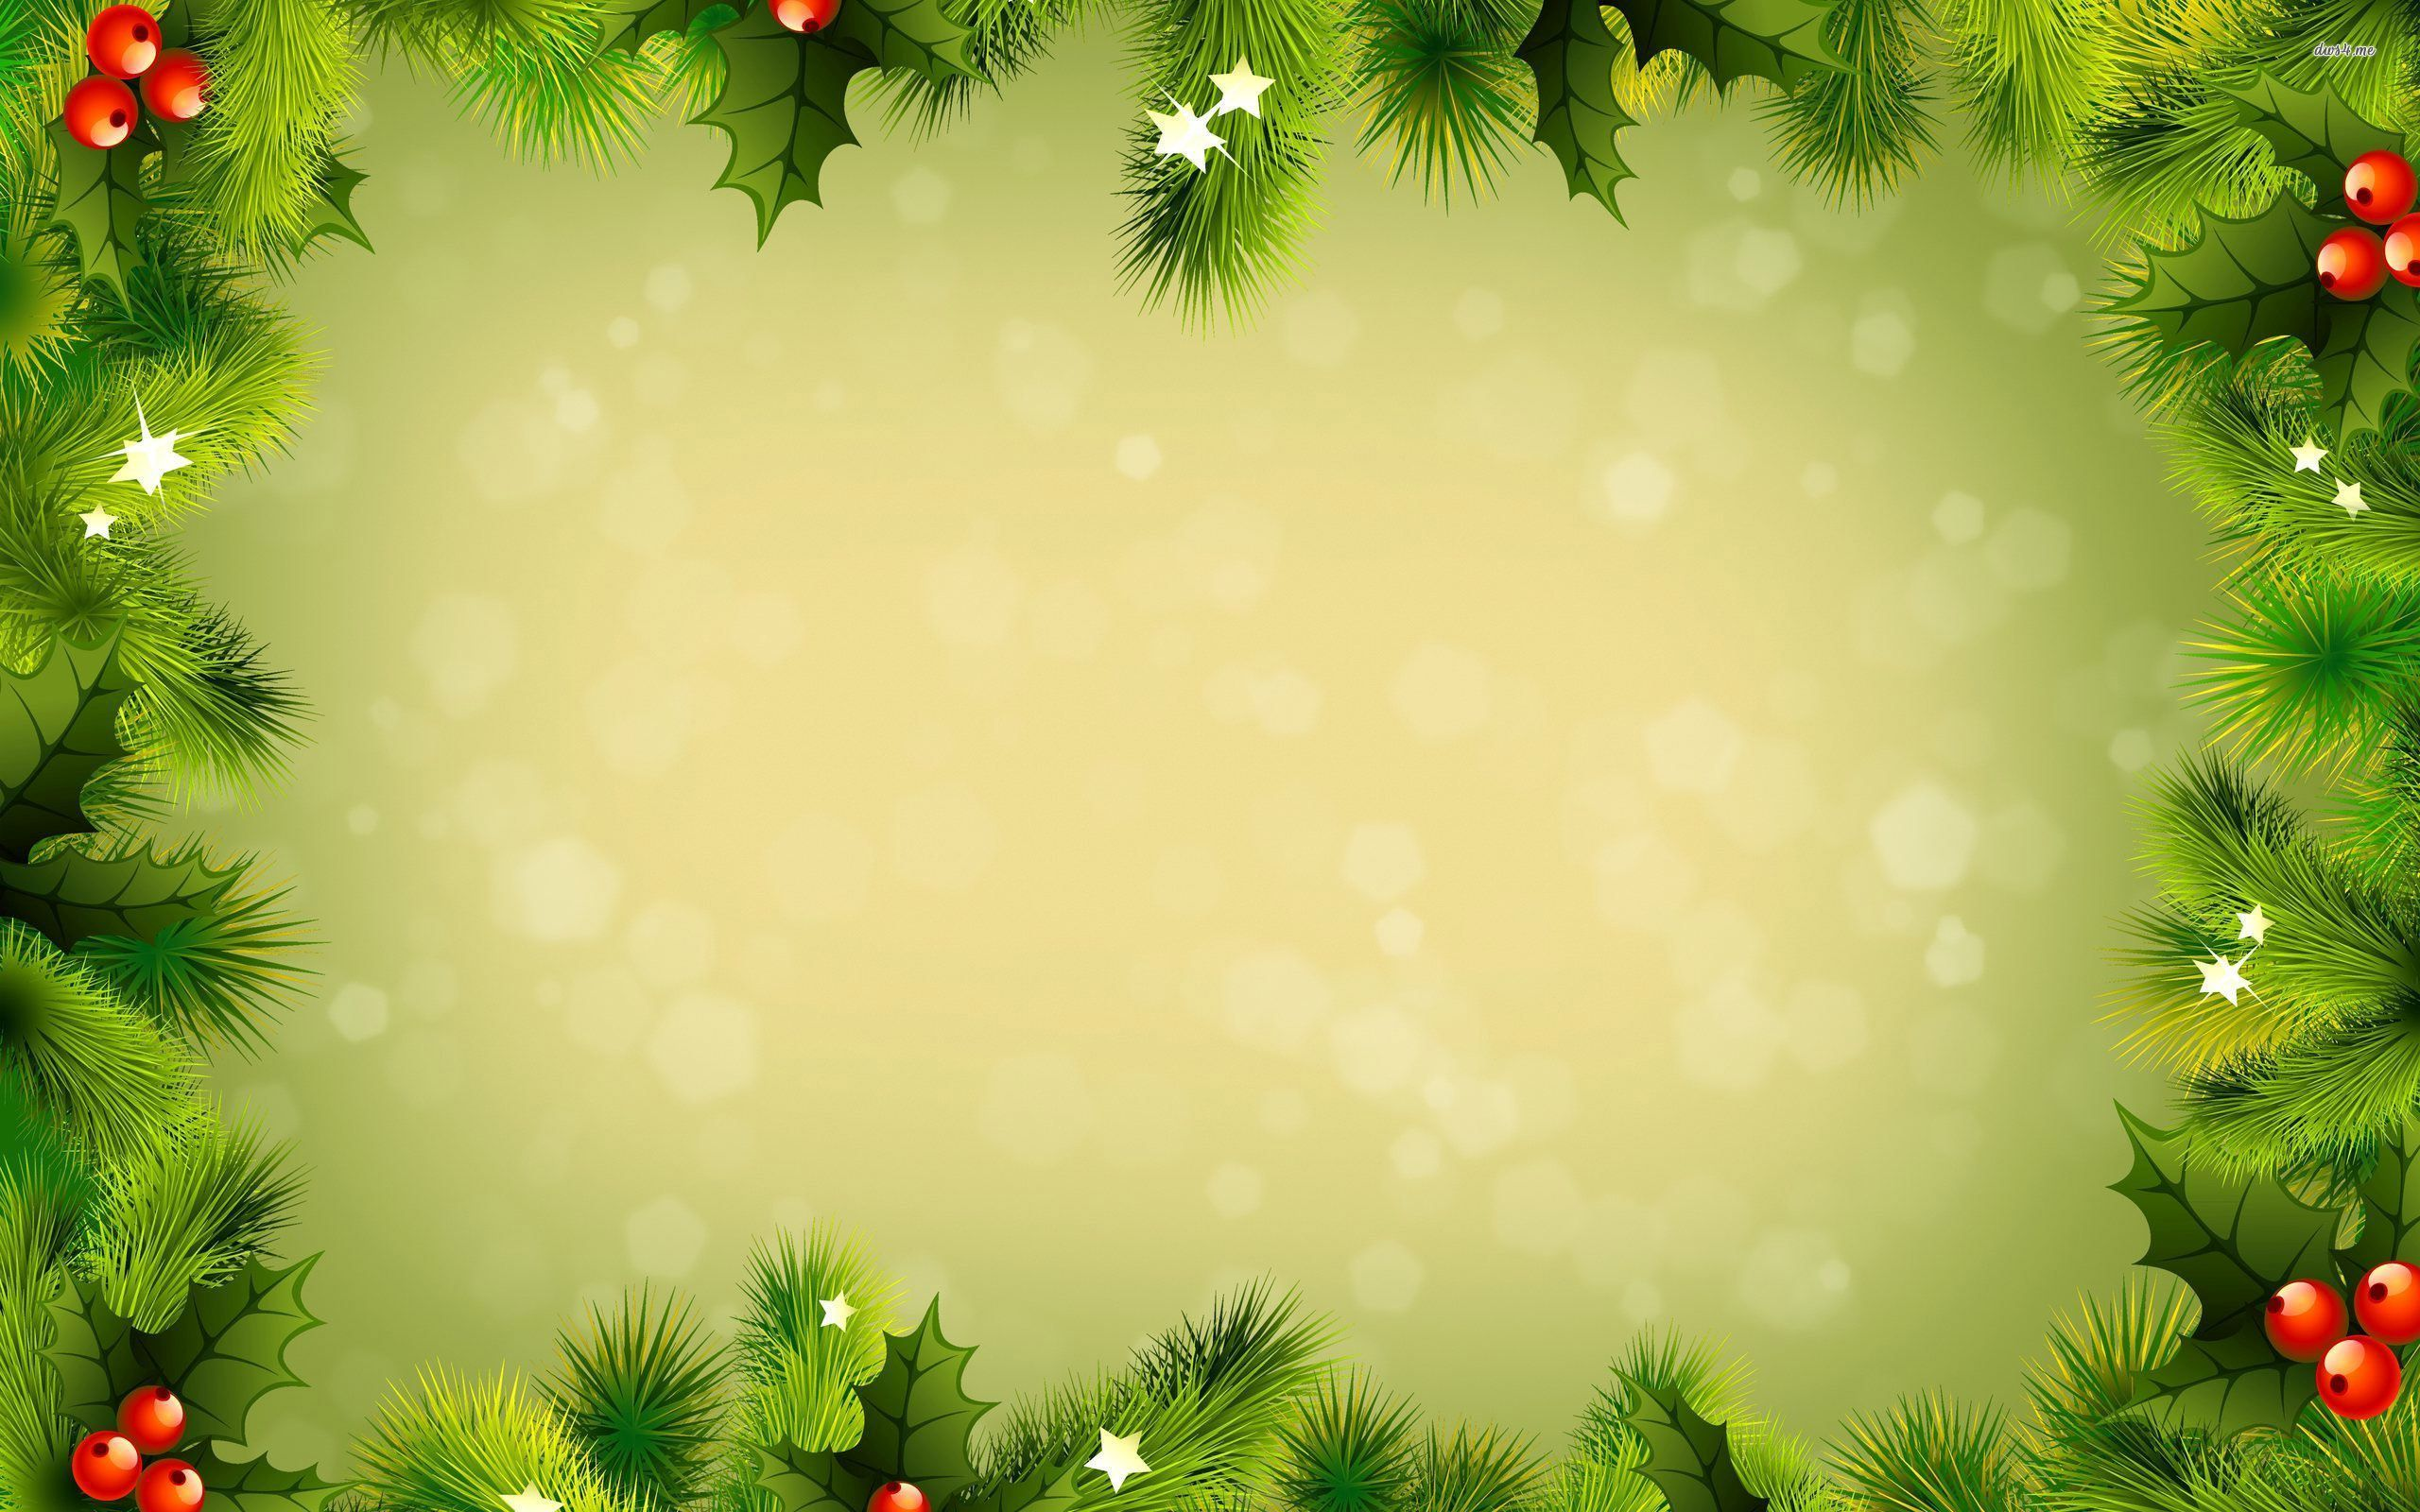 2560x1600 - Wallpaper for Christmas 54